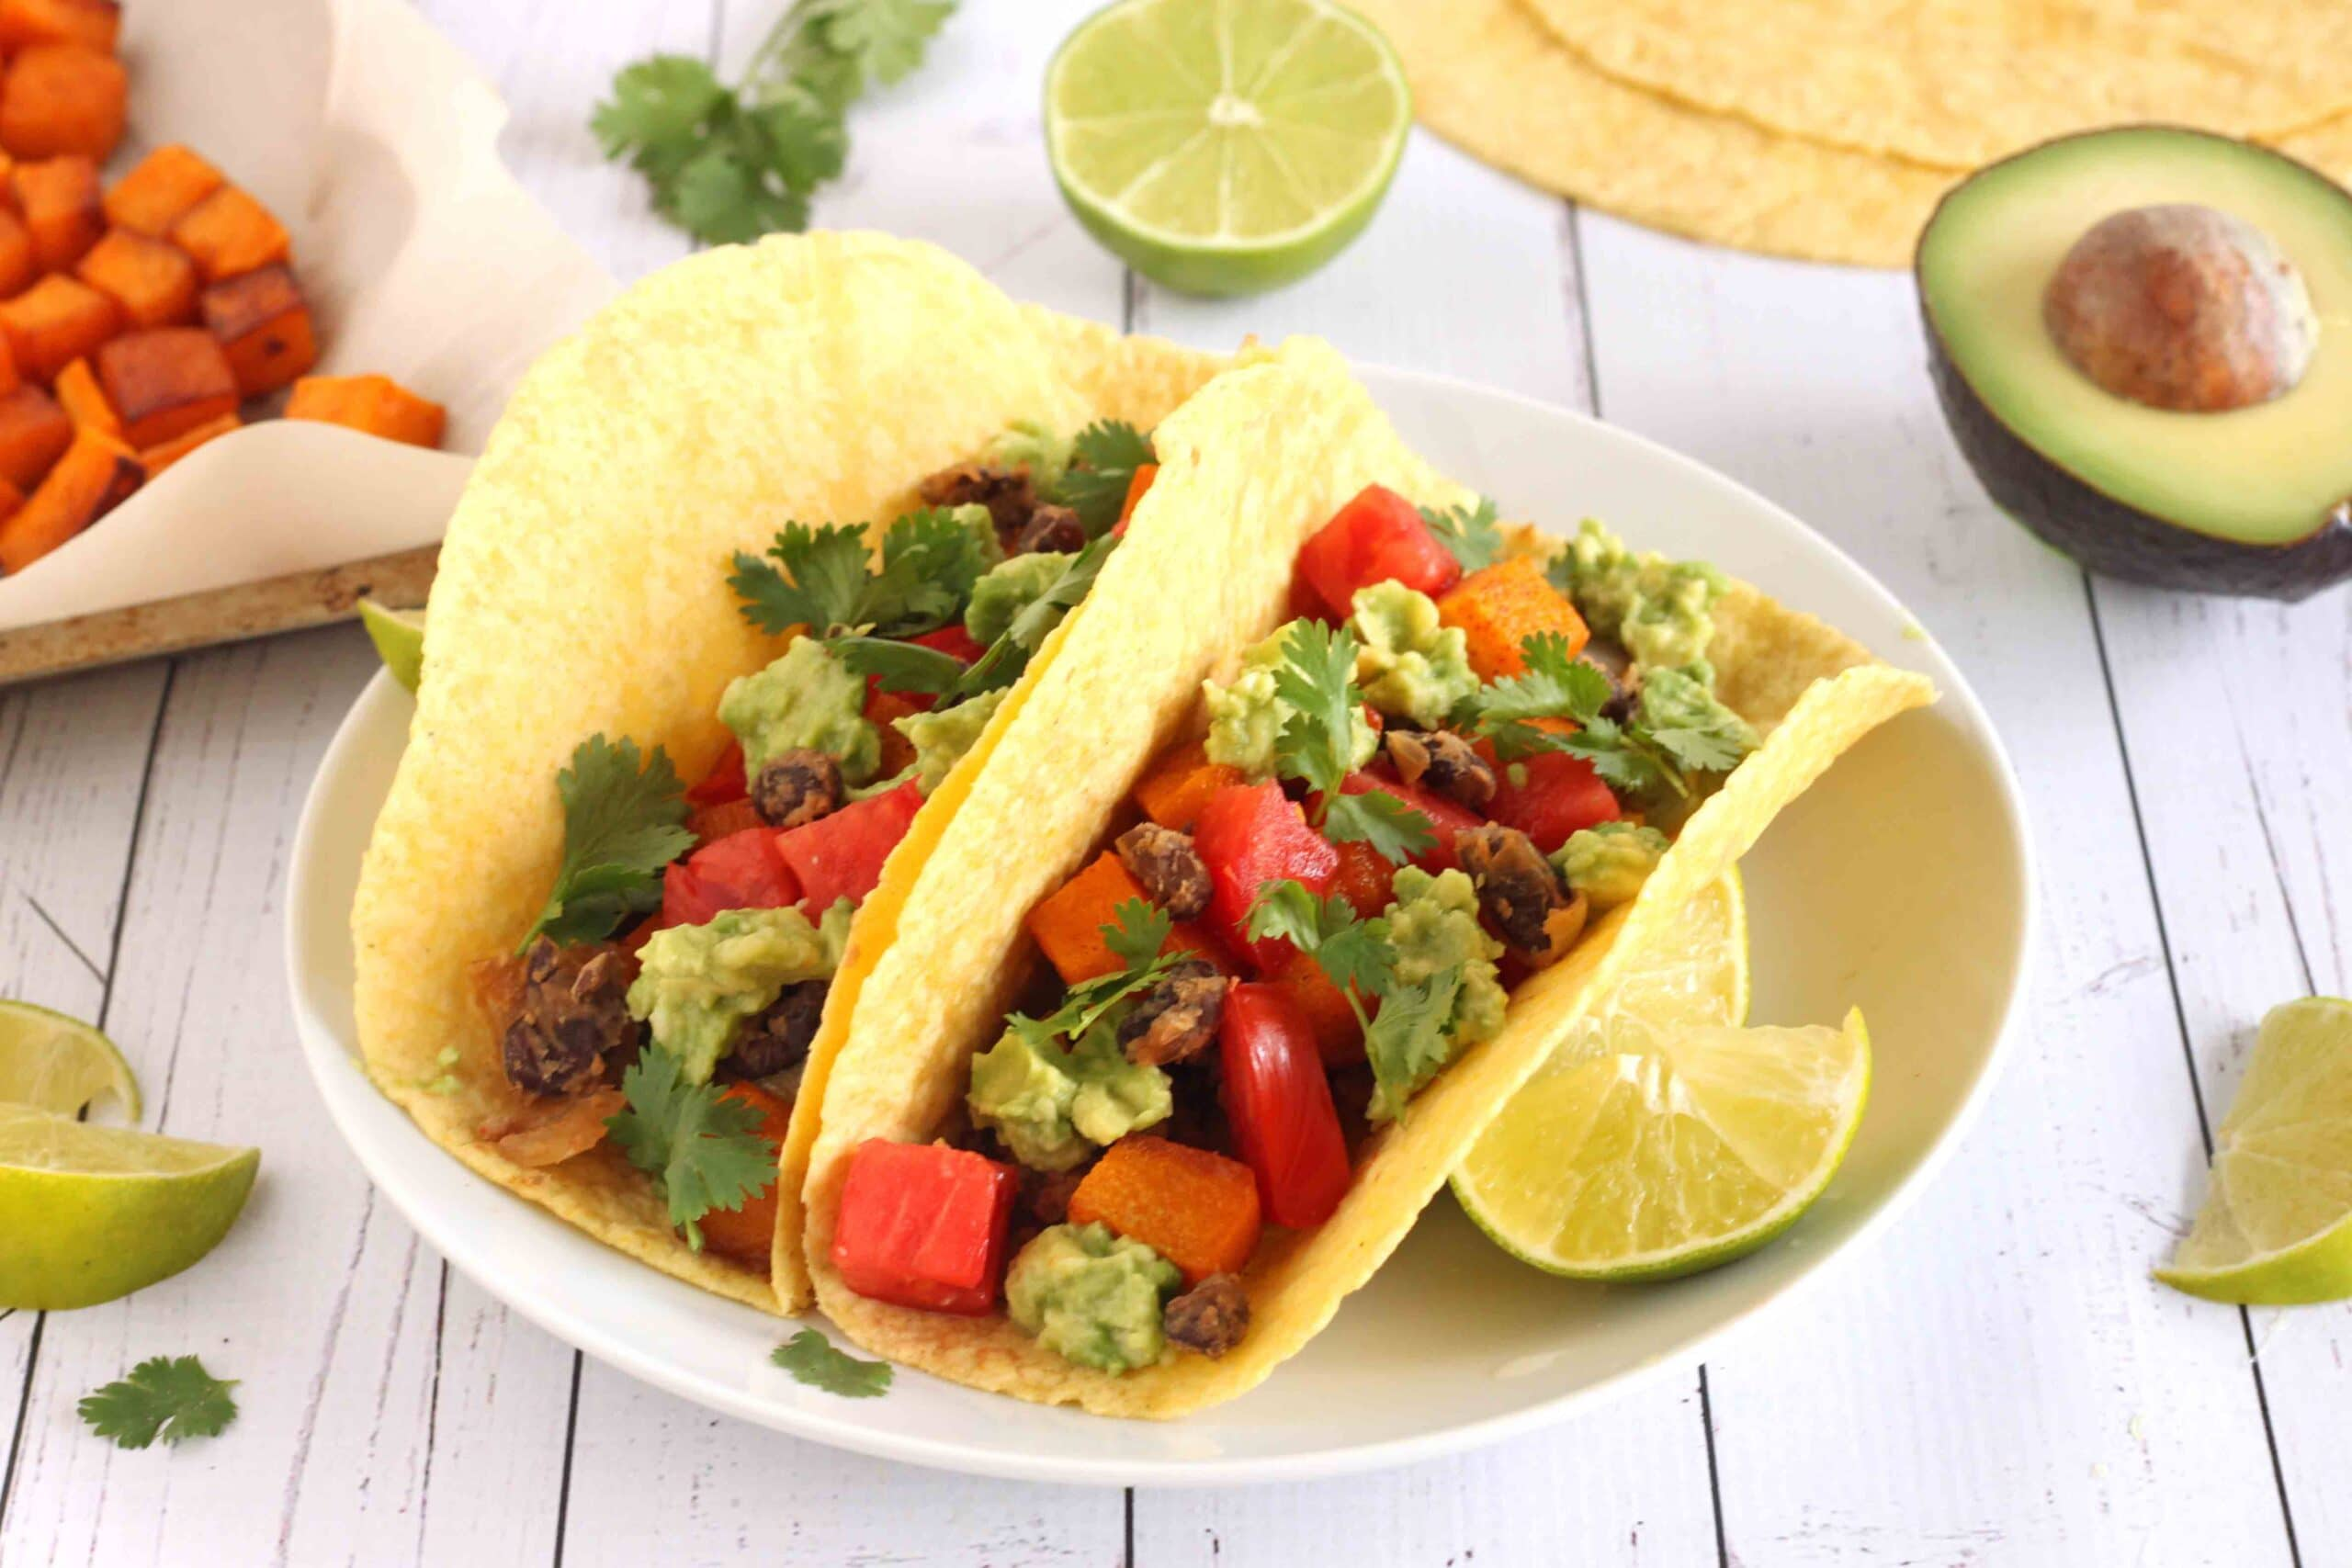 Vegan Roasted Pumpkin Tacos with Black Beans by Jesse Lane Wellness